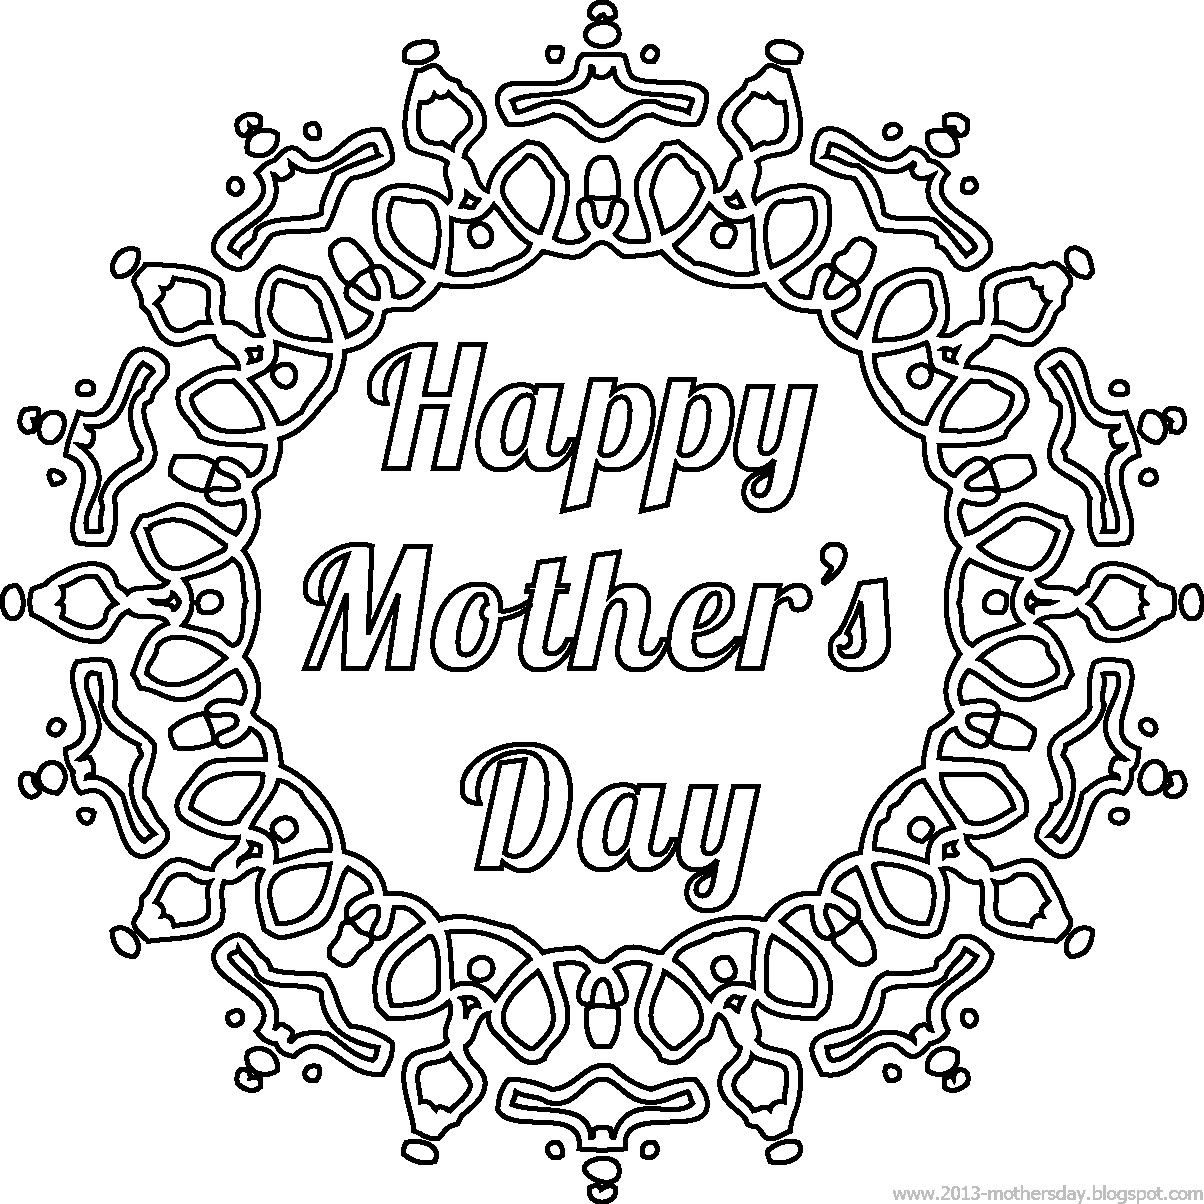 Free MotherS Day Templates Printables  Bing Images  MotherS